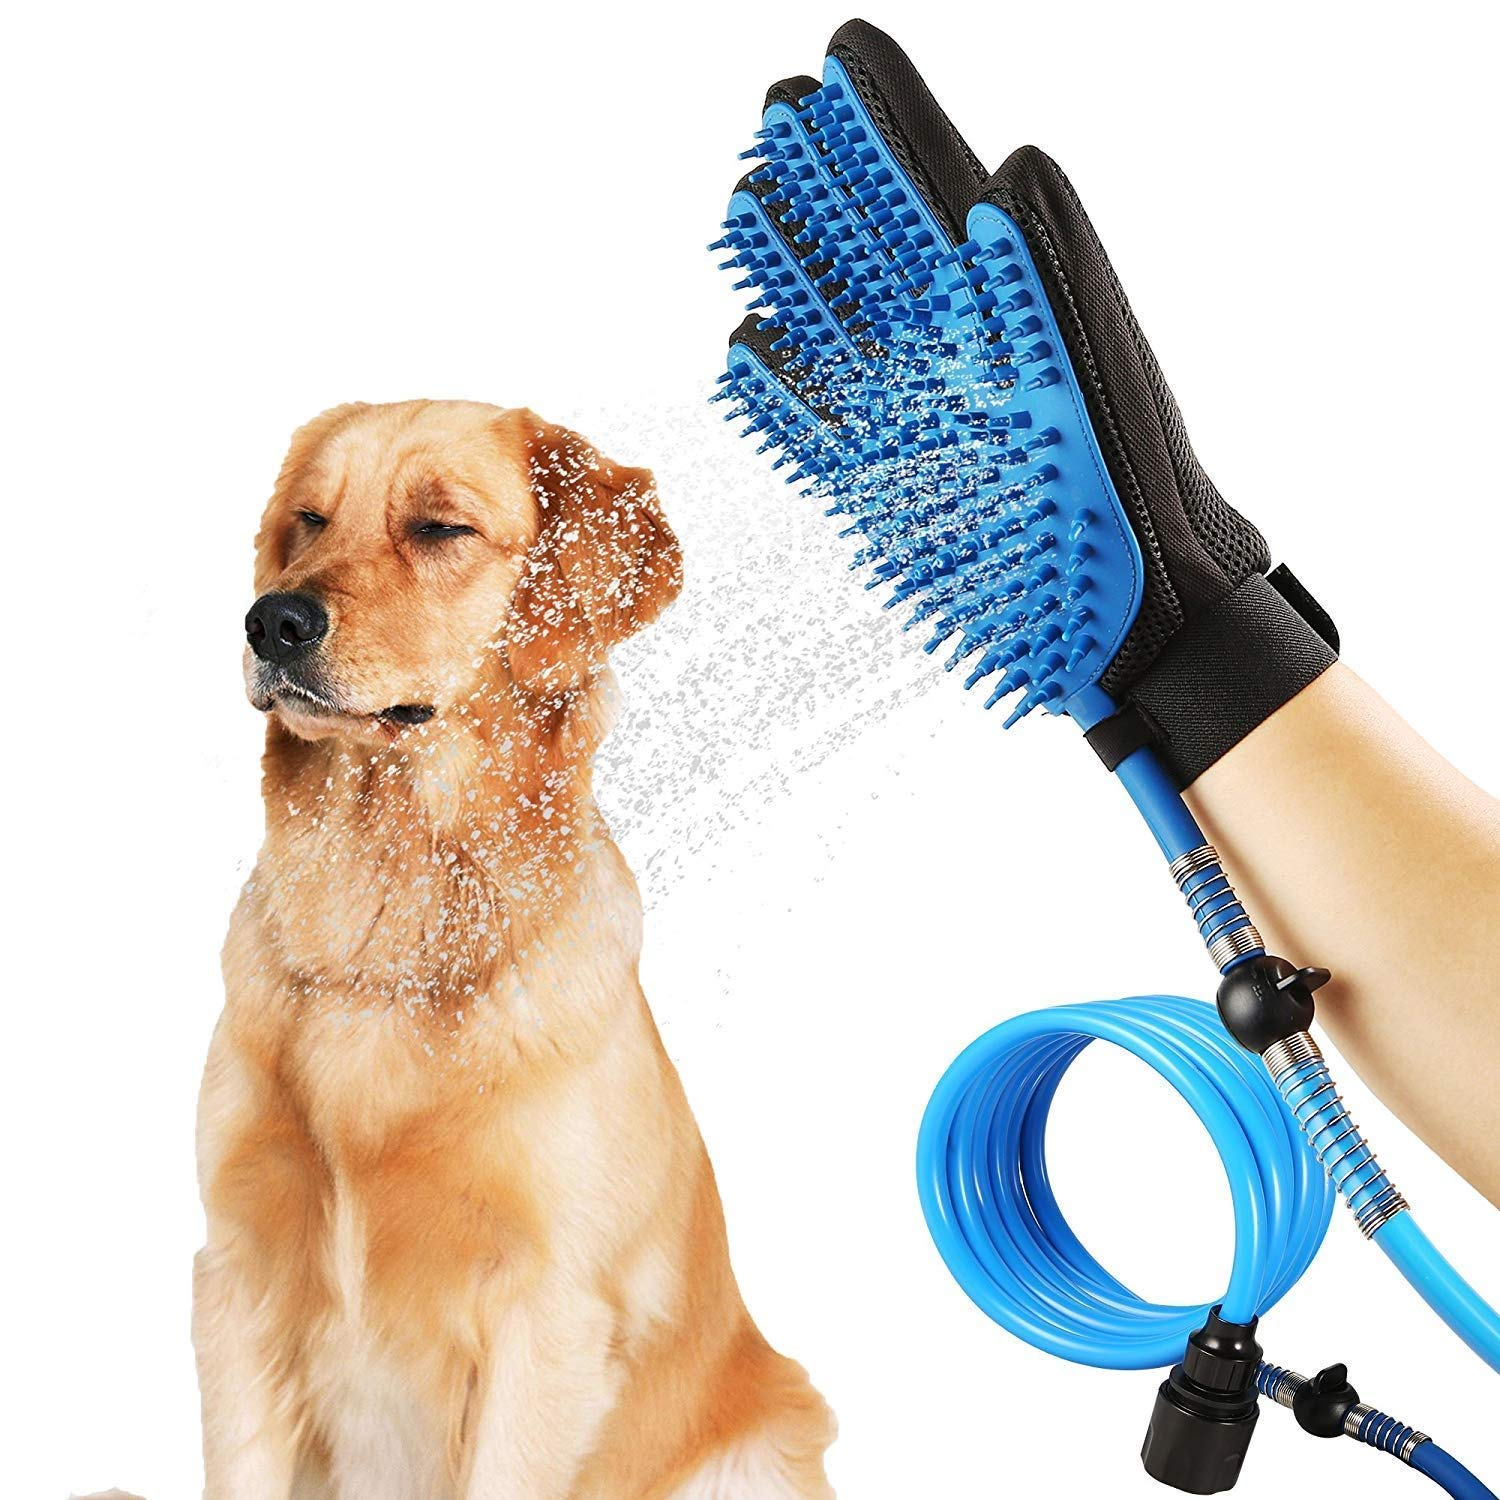 4tens Magic Double Size Hair Cleaner for Cat Dog Fur Removal from Home, Cloth, Sofa, Furniture Multi Color (B07M9DRGL4) Amazon Price History, Amazon Price Tracker